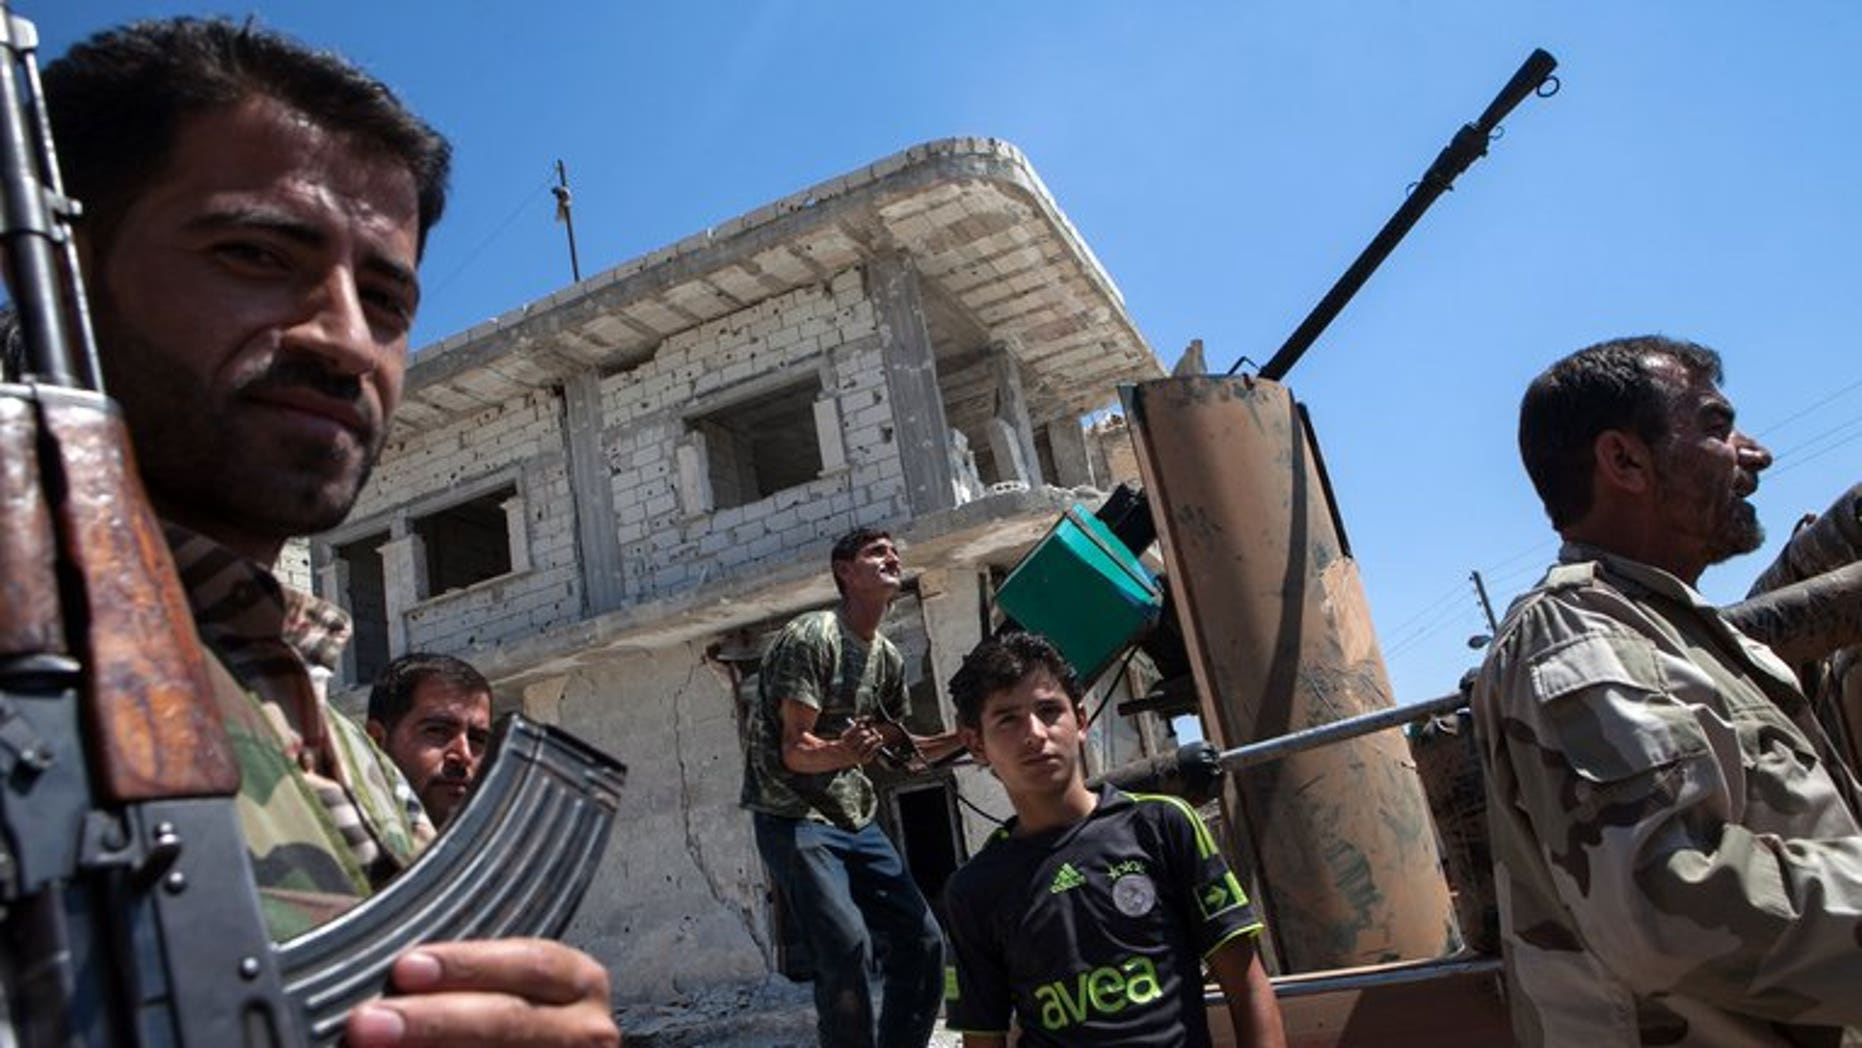 Syrian rebels try to locate a fighter plane in the village of Al-Rami in Idlib on June 22, 2013. Shelling and air raids by Syrian government forces against a string of villages in the northwestern province of Idlib killed at least 29 people, a watchdog said.